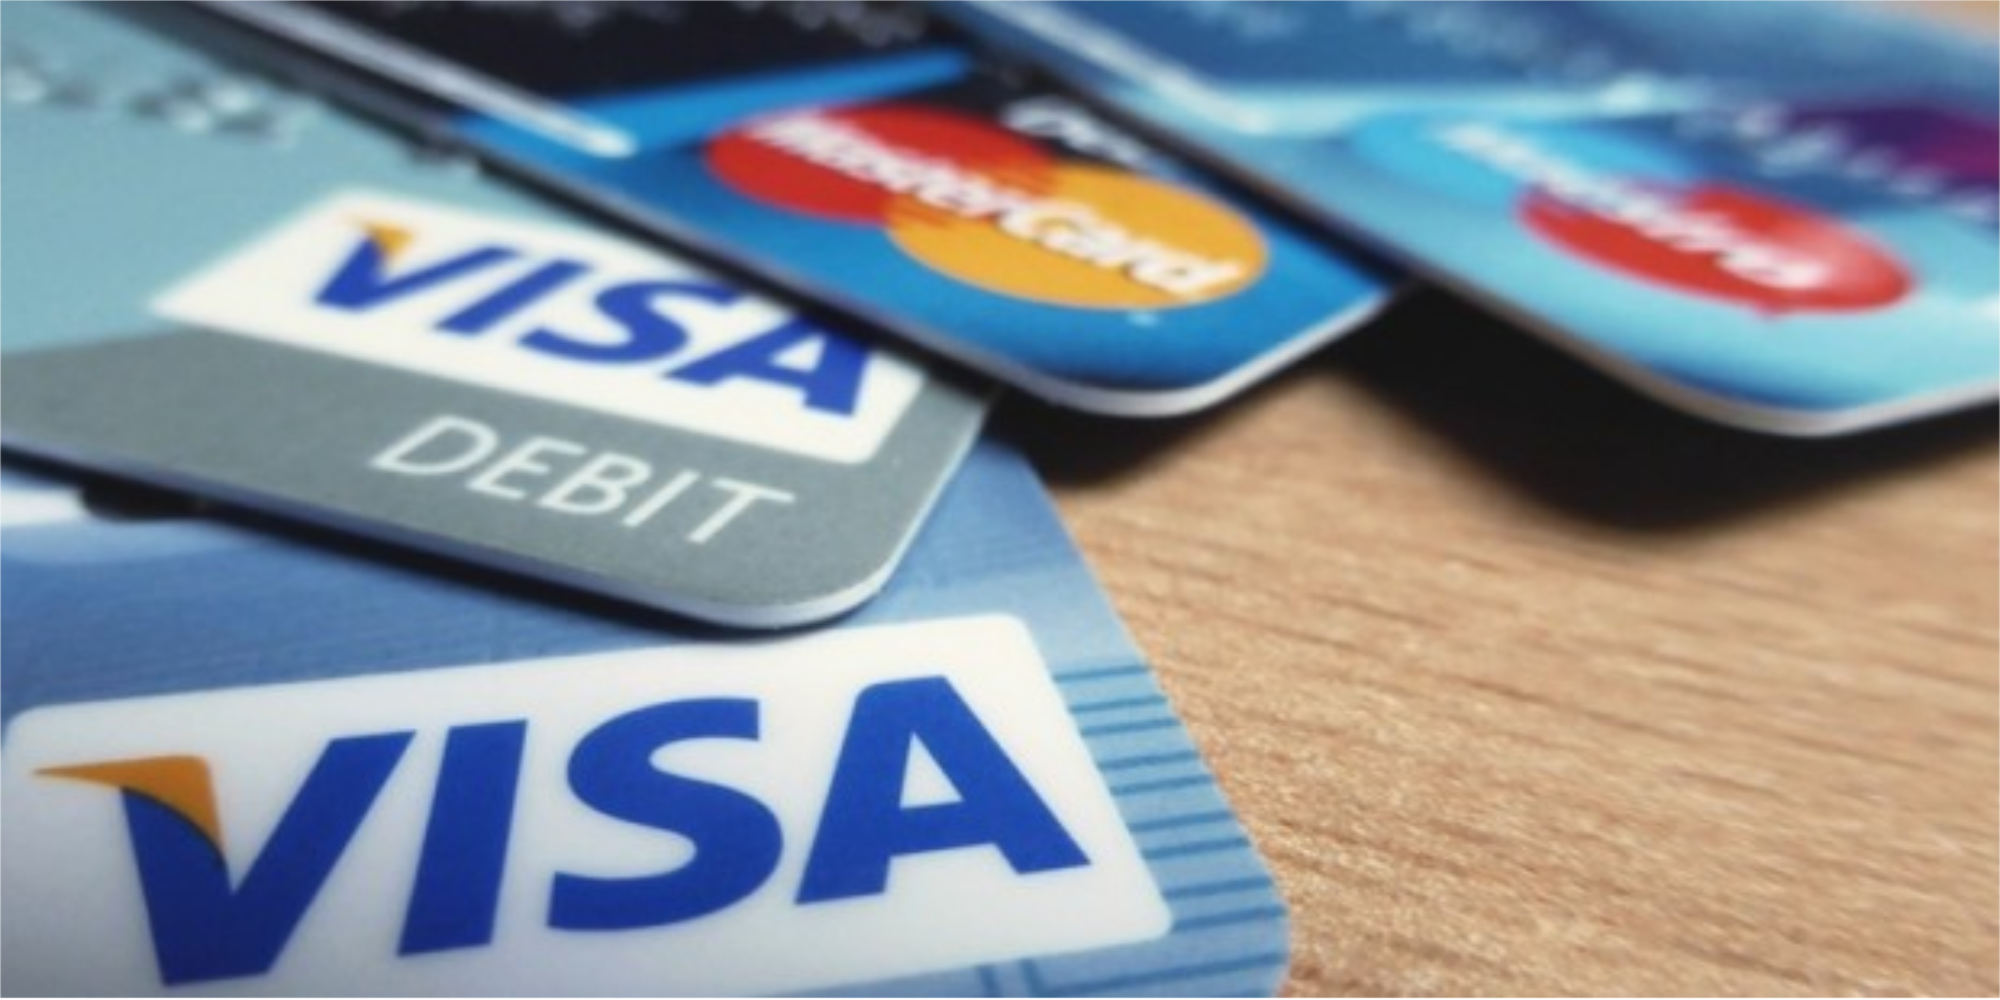 Securing Our Payment Cards